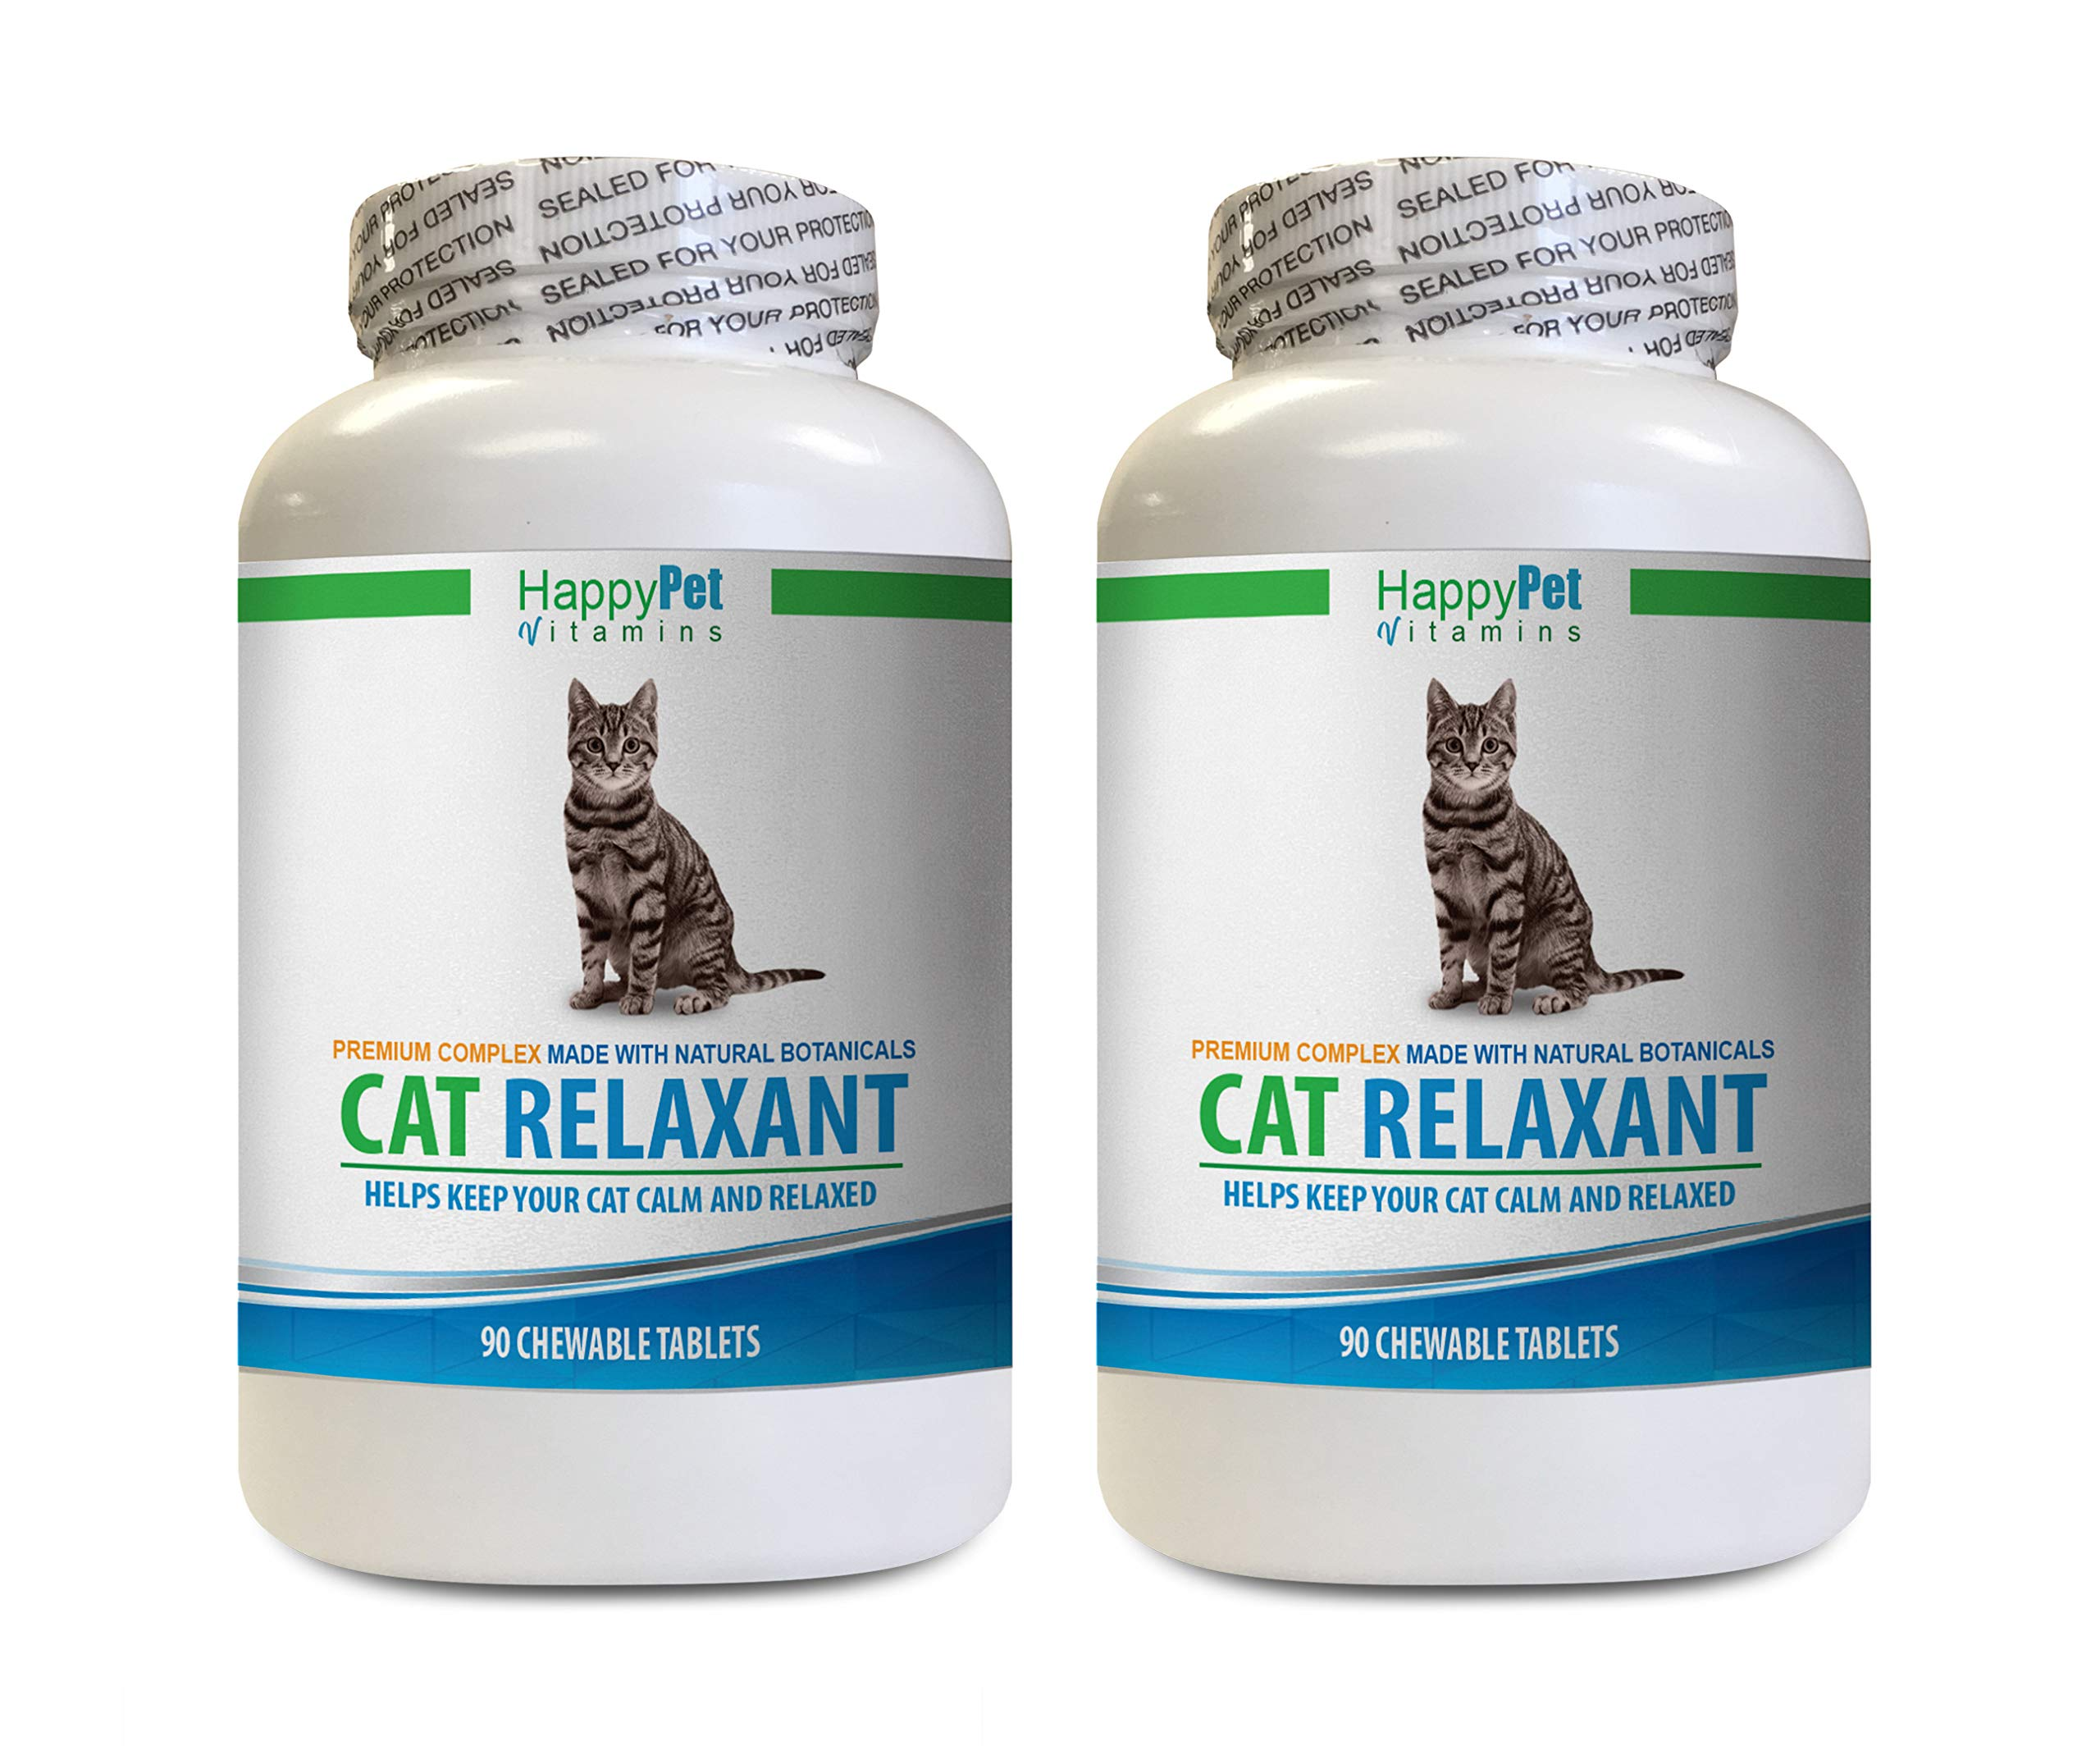 HAPPY PET VITAMINS LLC cat Calming Treats - CAT Relaxant - Anxiety and Stress Relief - Natural Calmer - Premium - cat Anxiety Pills - 2 Bottles (180 Chewable Tabs) by HAPPY PET VITAMINS LLC